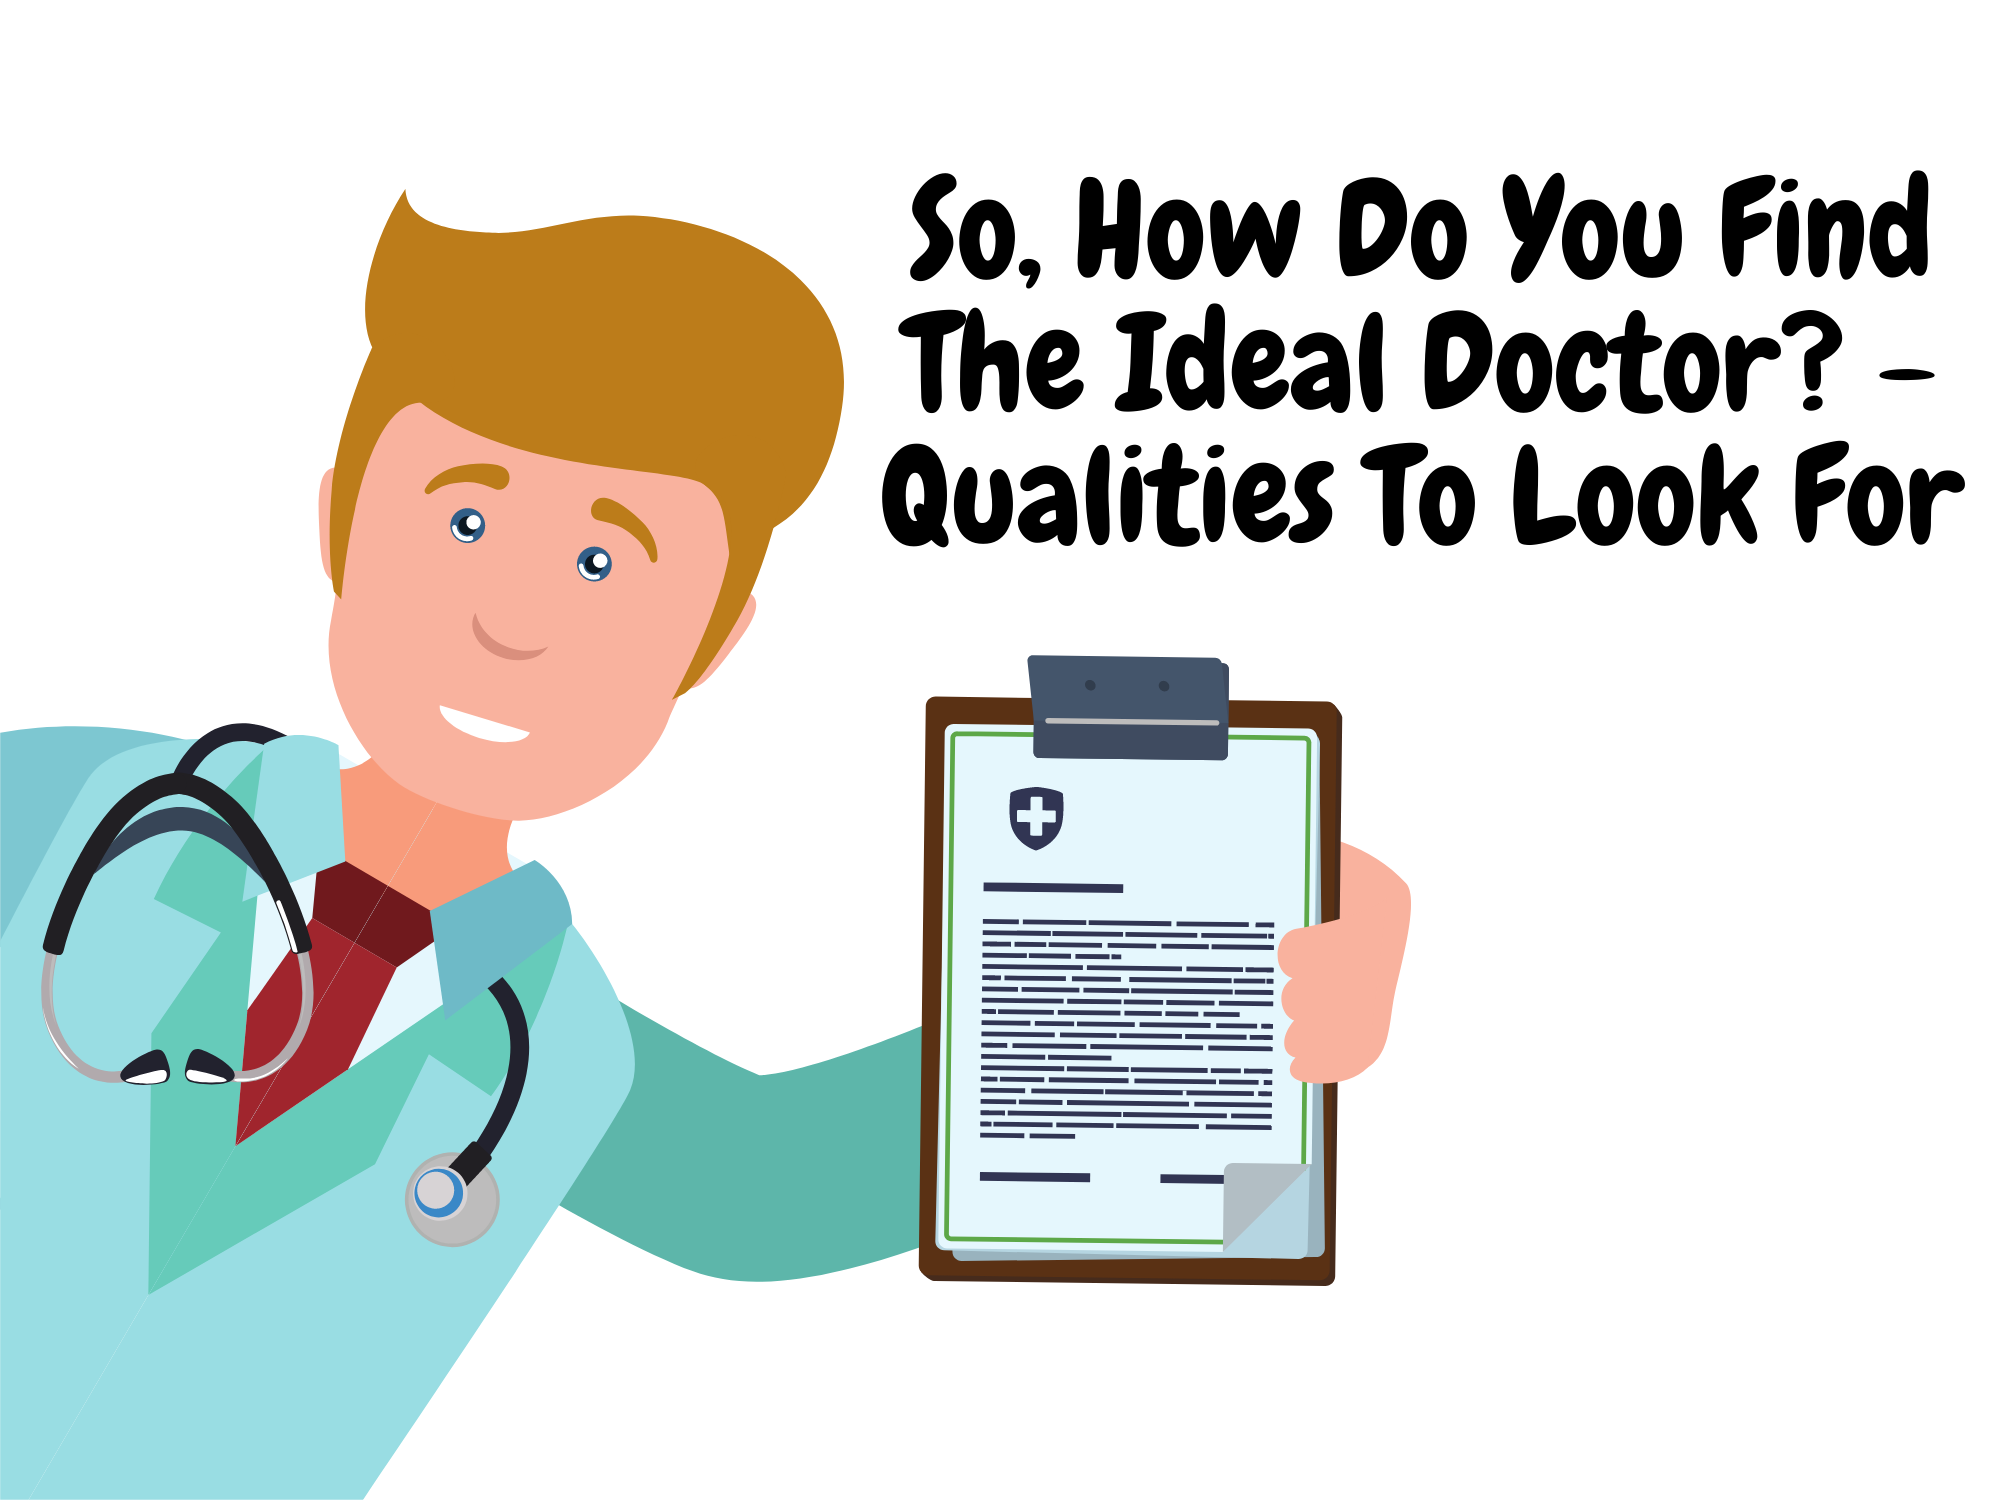 So-How-Do-You-Find-The-Ideal-Doctor-Qualities-To-Look-For